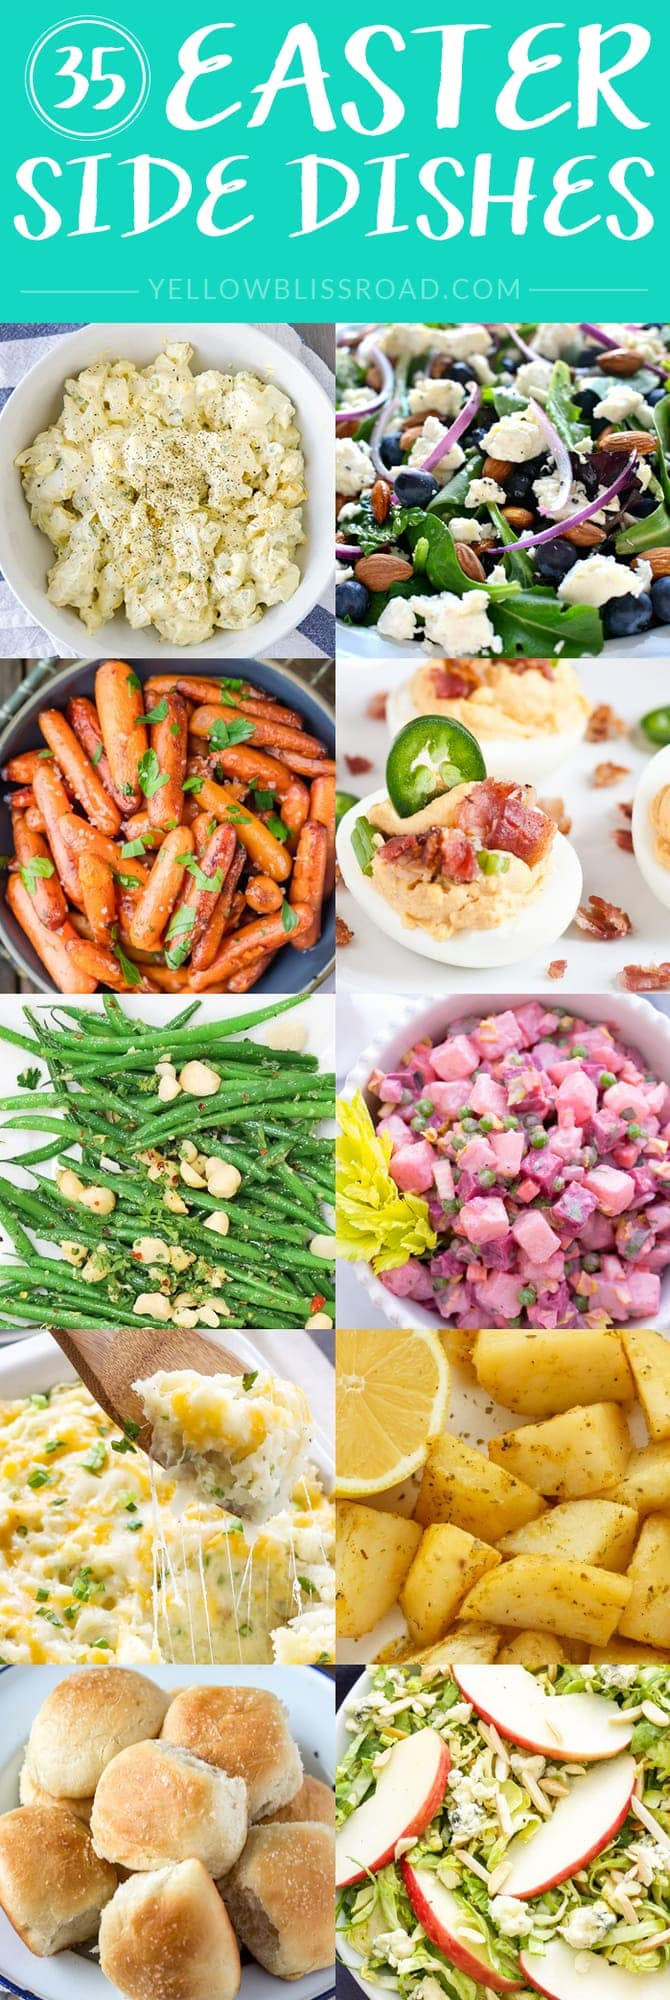 35 Easter Side Dishes - NEW for 2016!